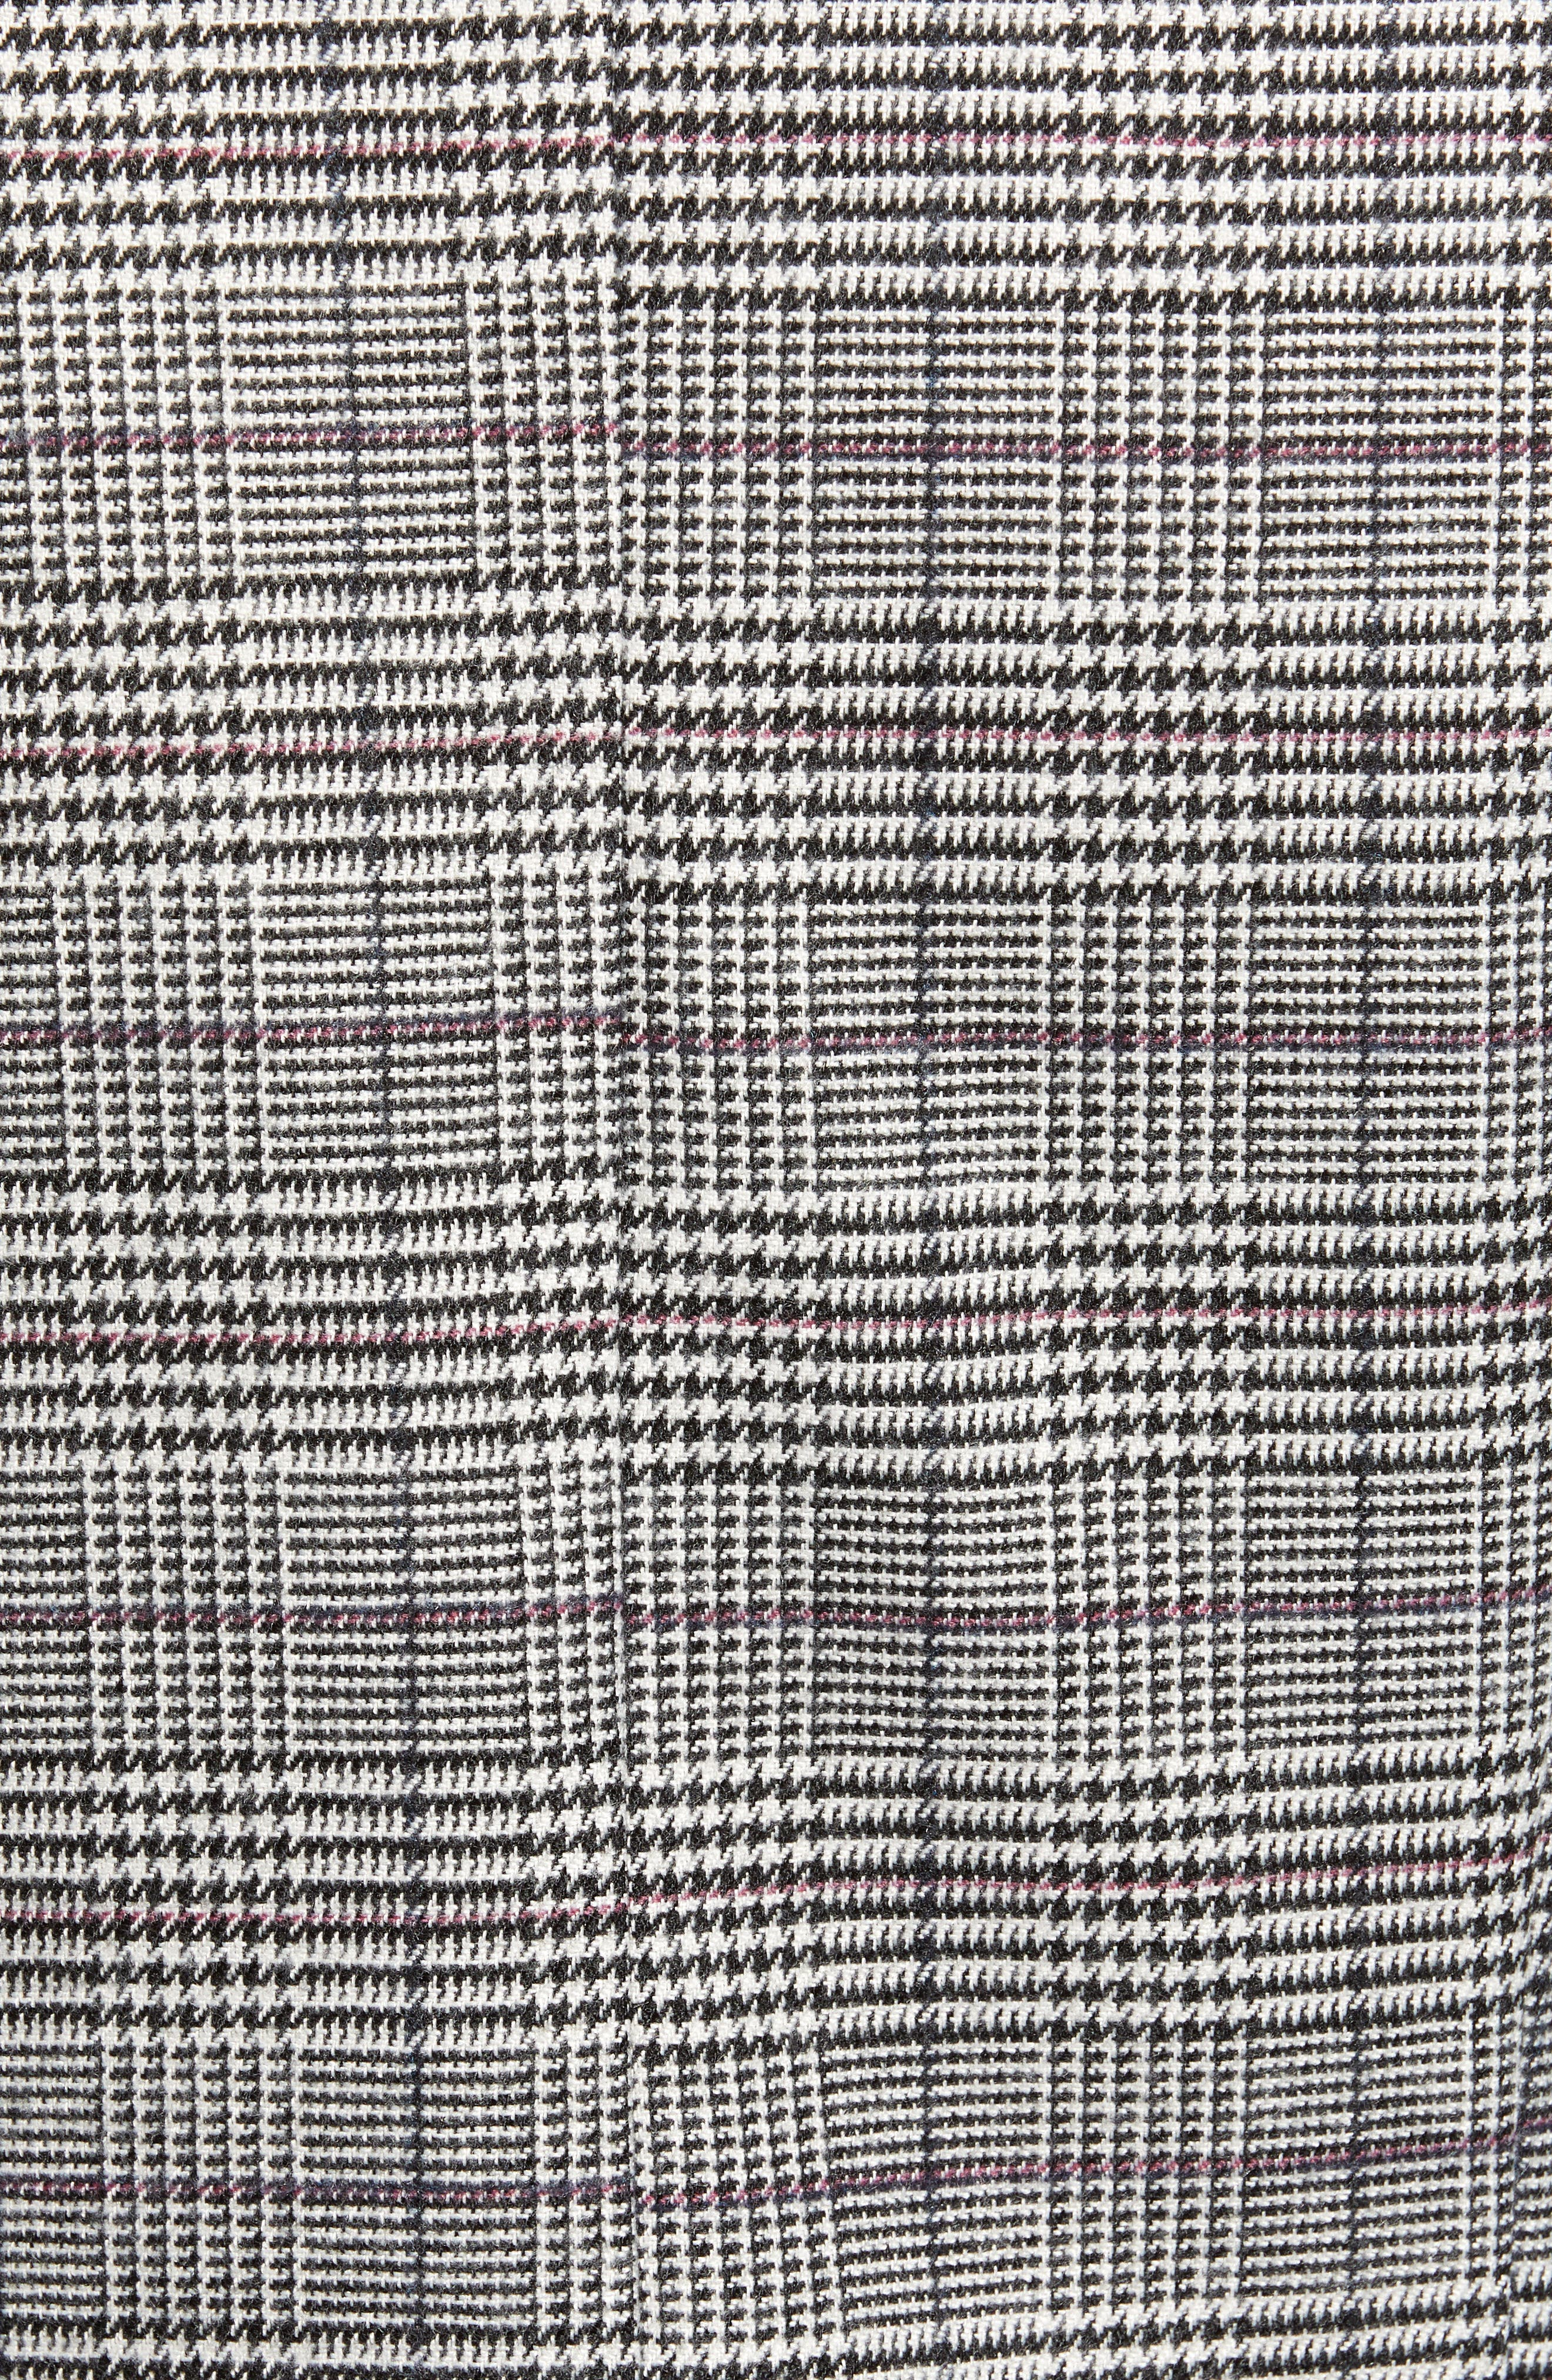 Chriselle Lim Bianca Piped Houndstooth Blazer,                             Alternate thumbnail 8, color,                             GREY PLAID